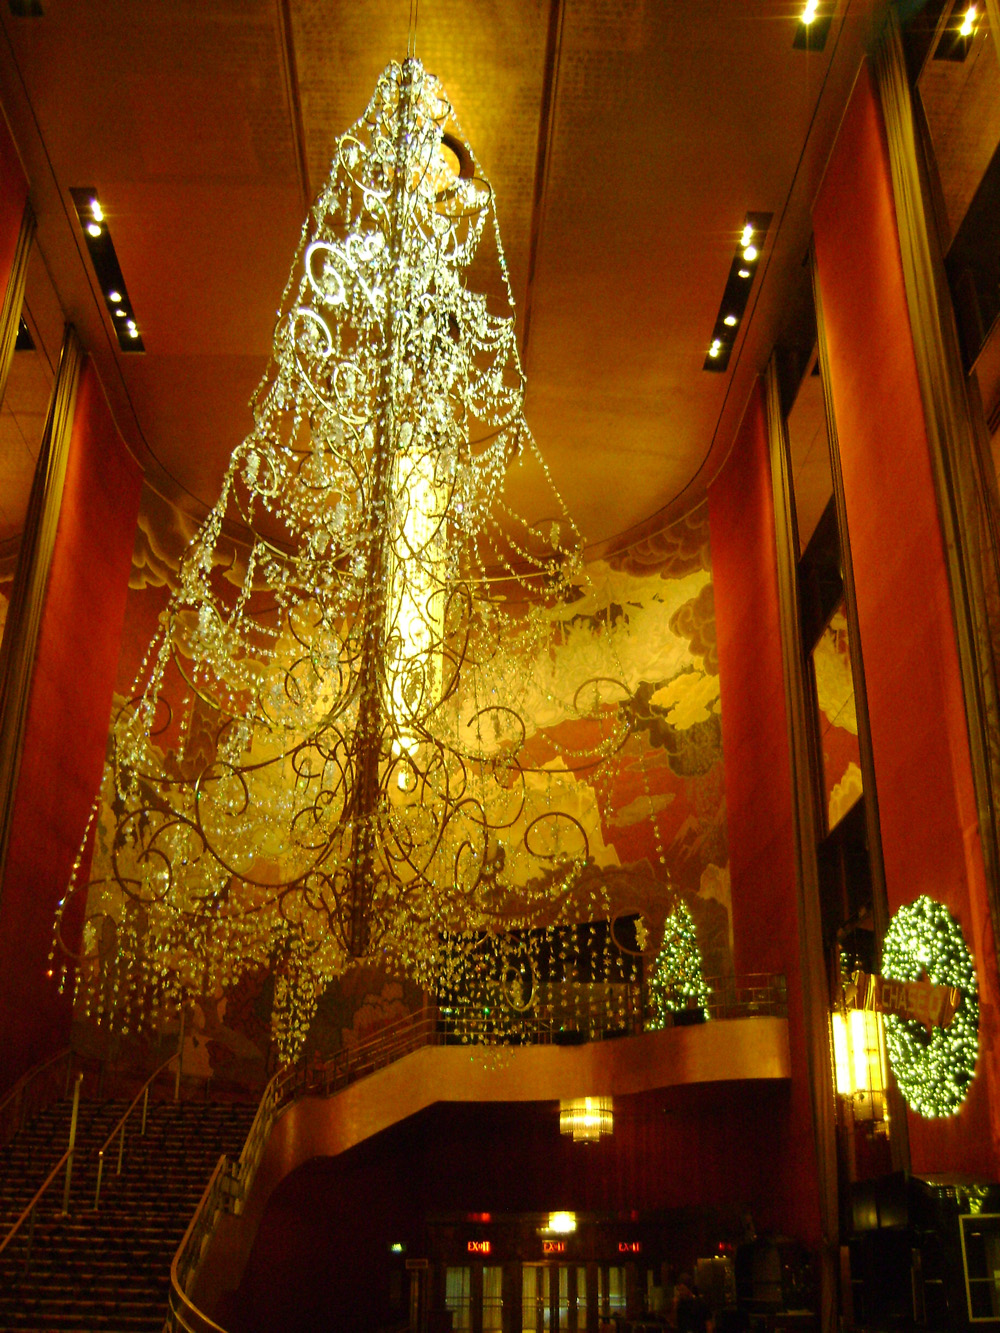 Behind the scenes at radio city music hall across106thstreet the holiday swarovski crystal chandelier tree in the lobby c nelson 2013 arubaitofo Images